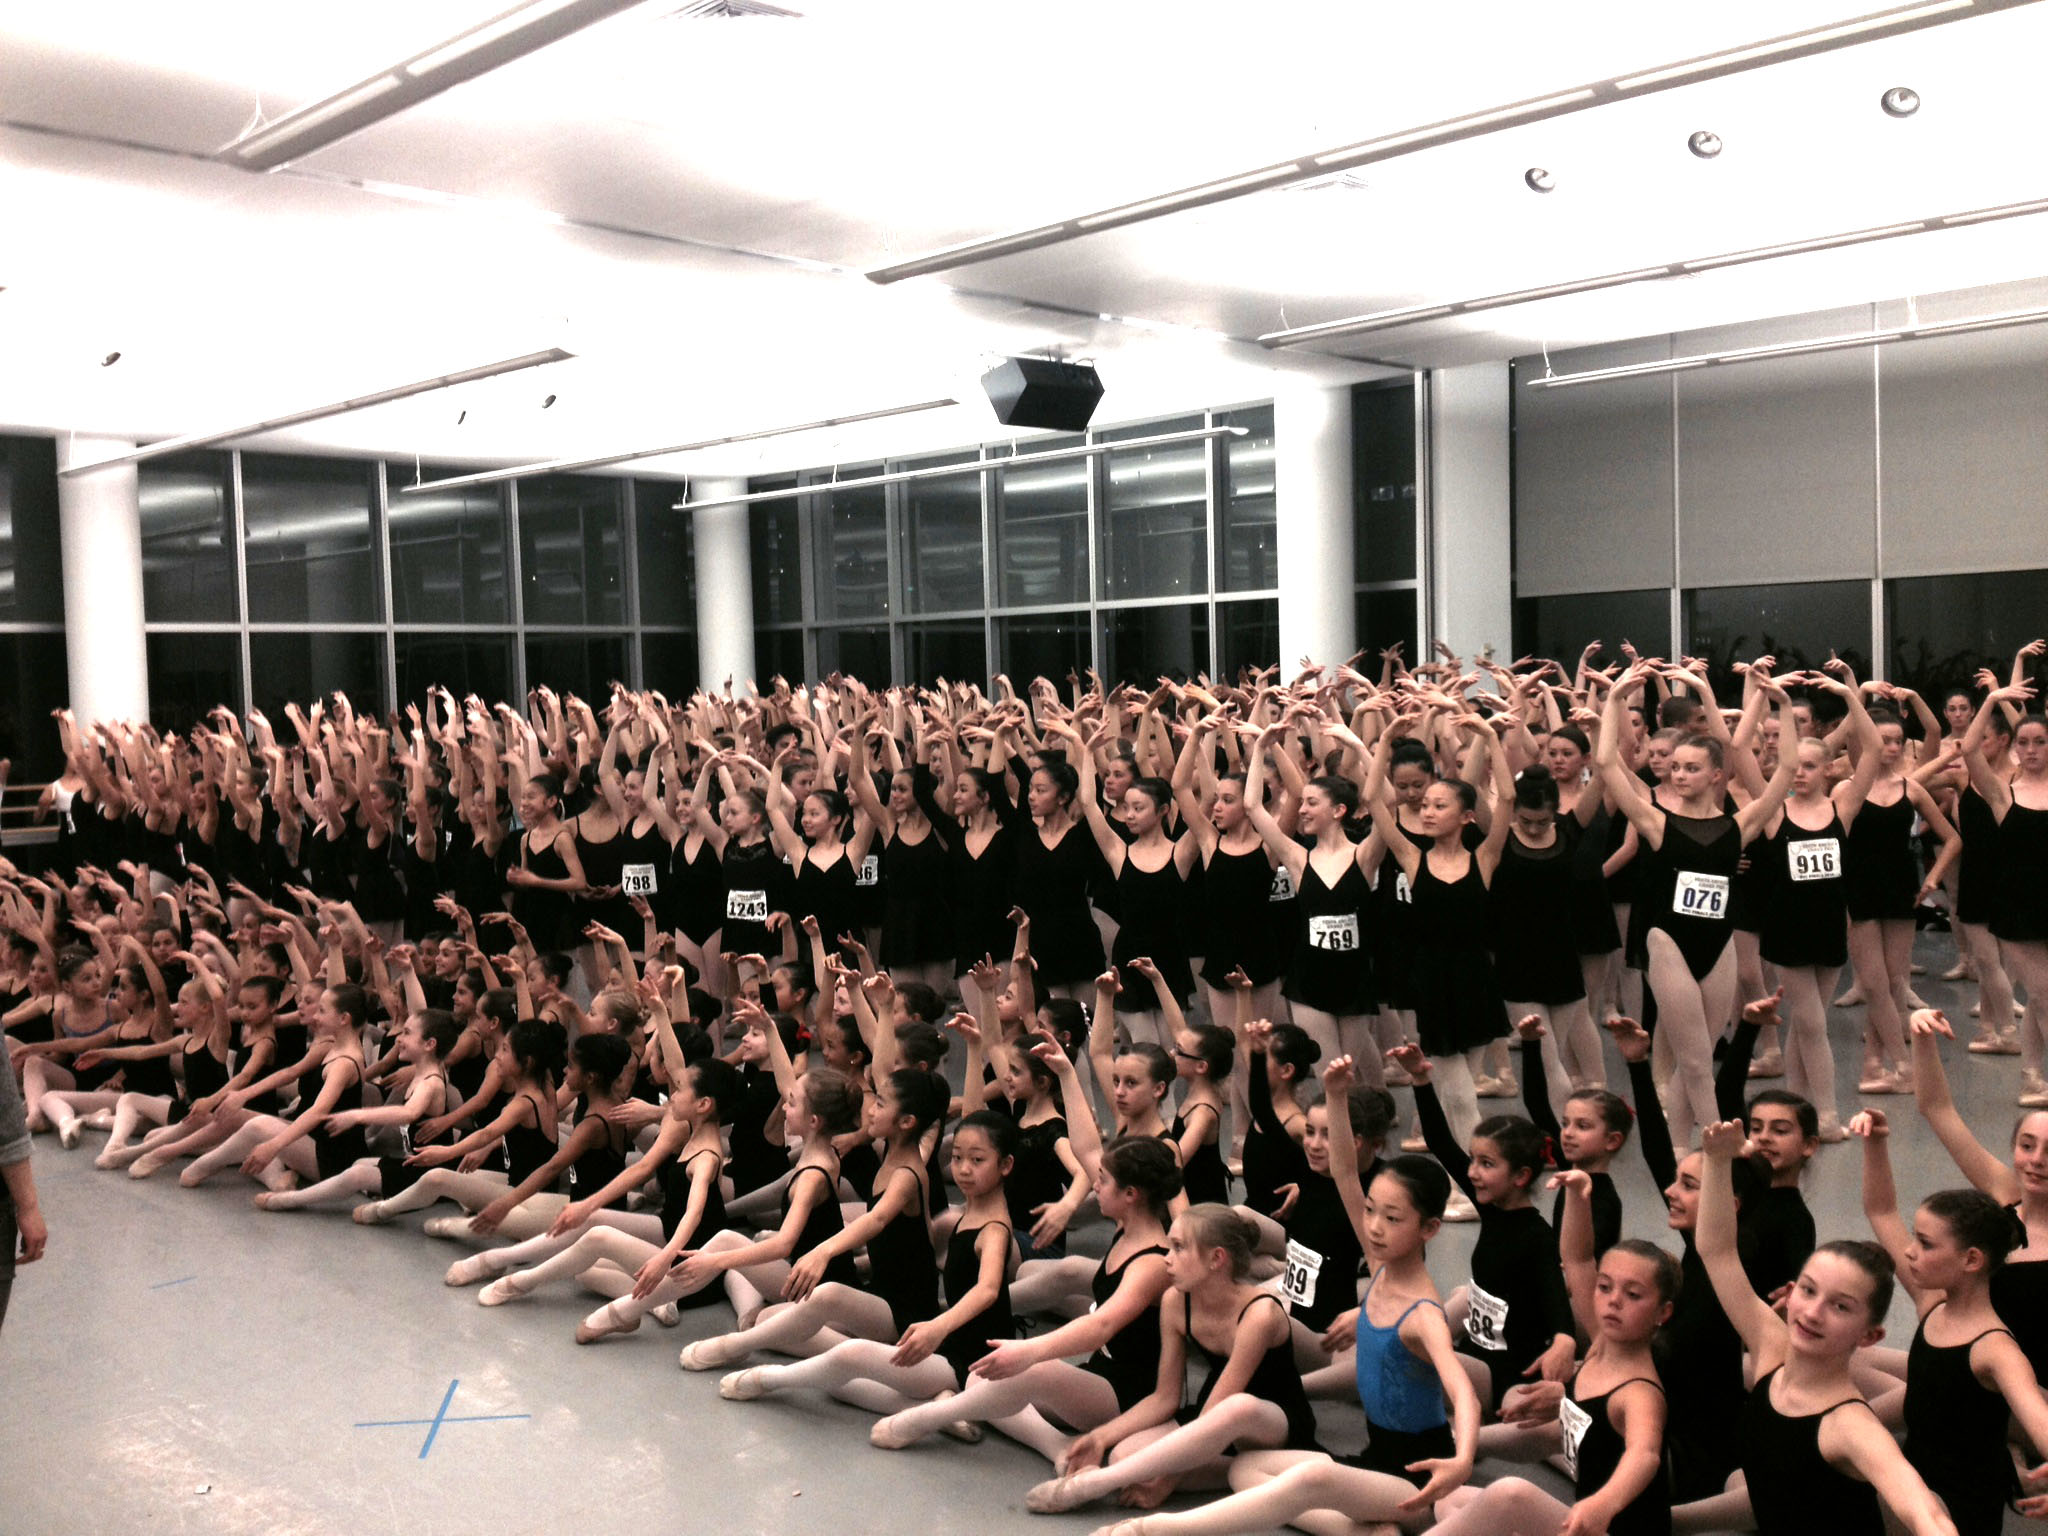 Rehearsal in Alvin Ailey studios in New York City. (Submitted photo)